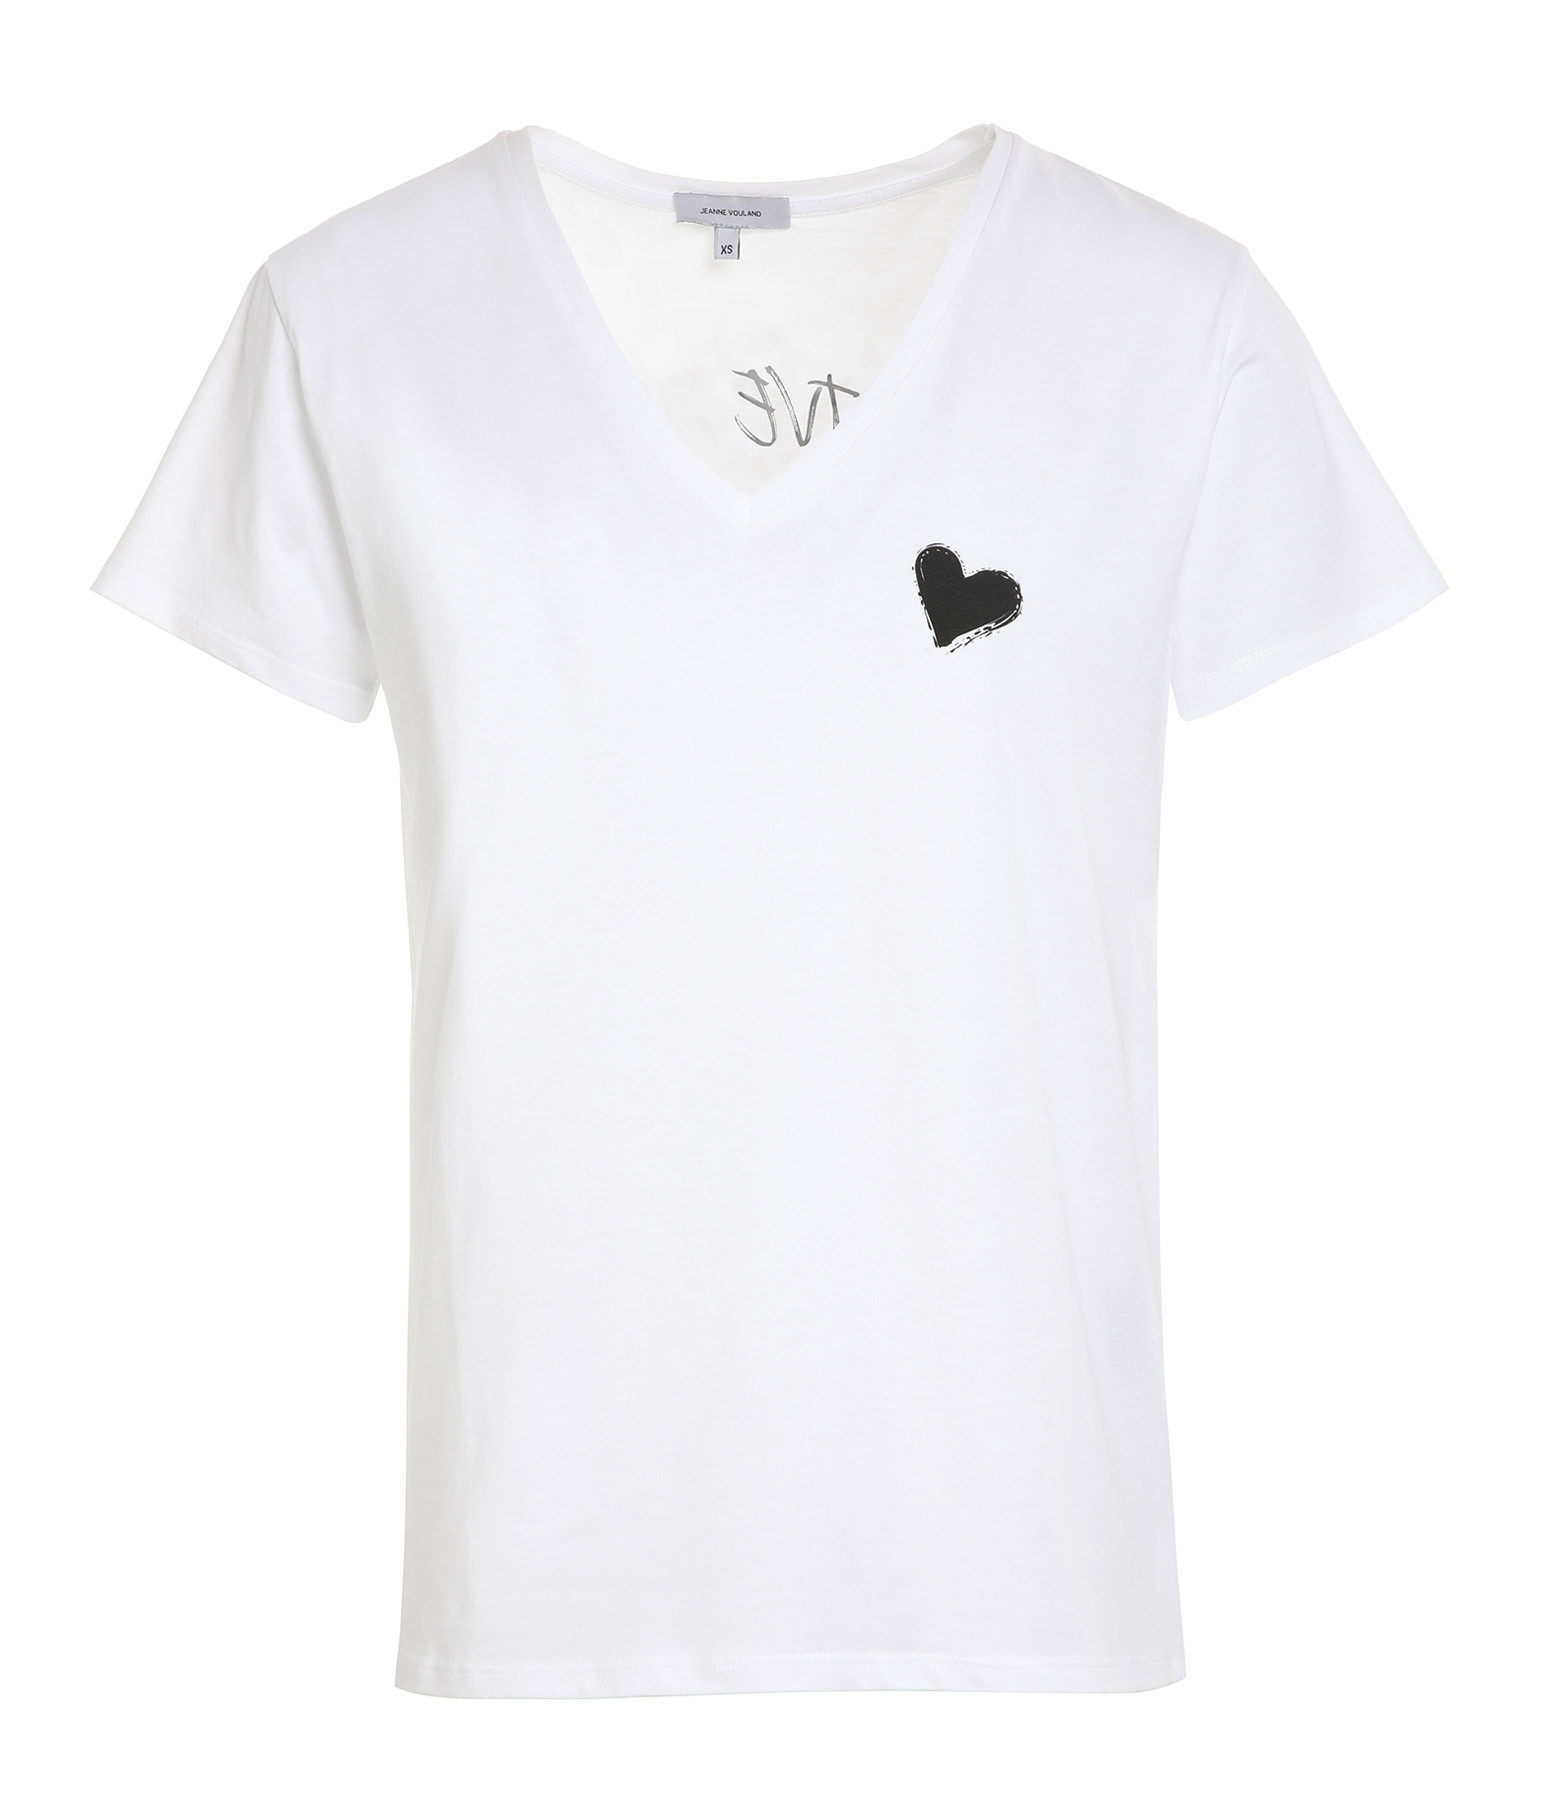 JEANNE VOULAND - Tee-shirt Ery Give Yourself Love Coton Blanc